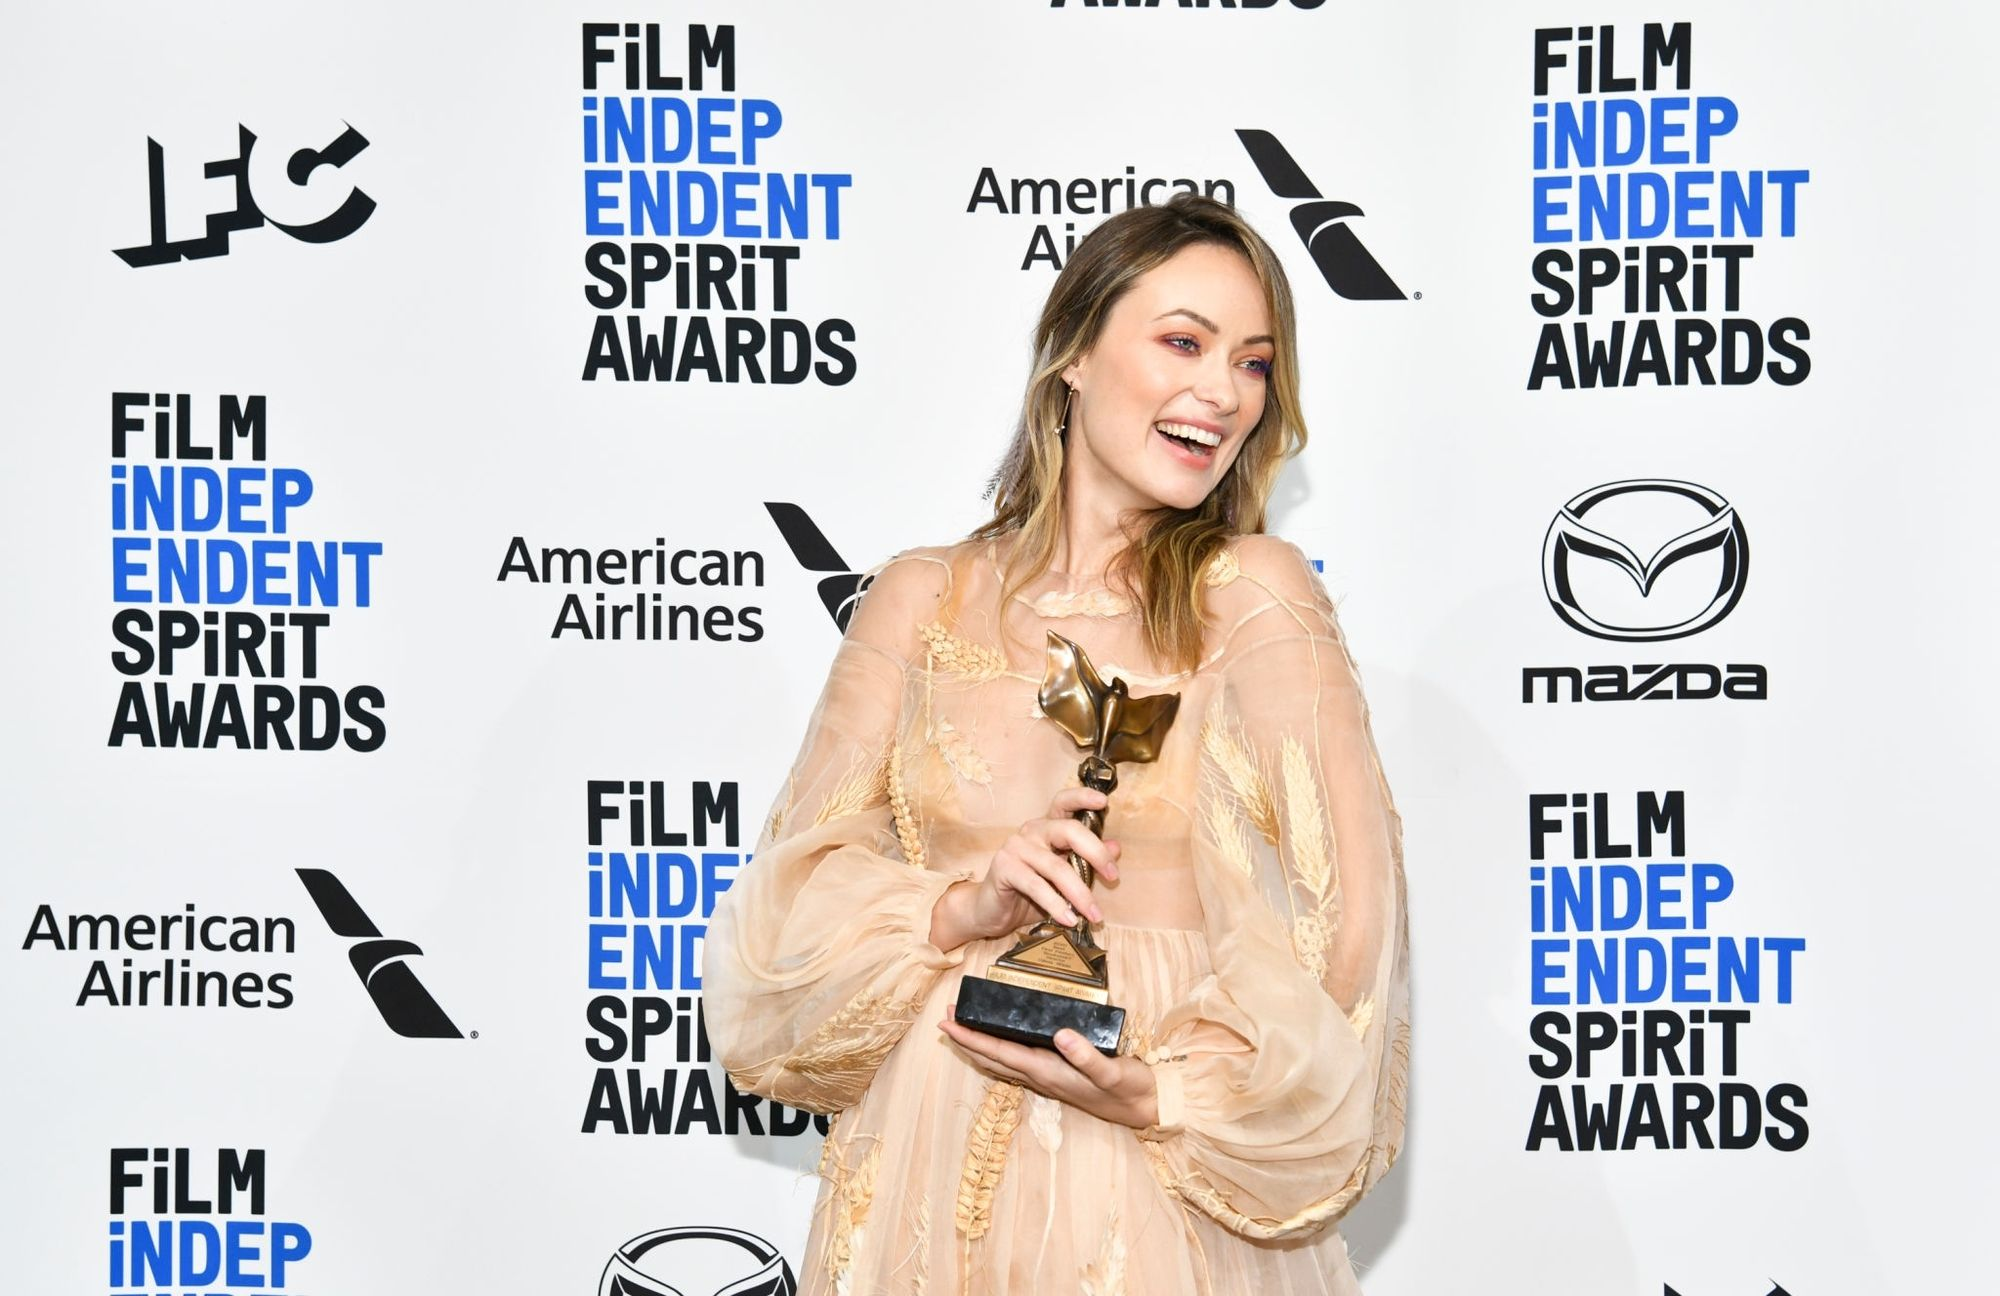 2020 Film Independent Spirit Awards